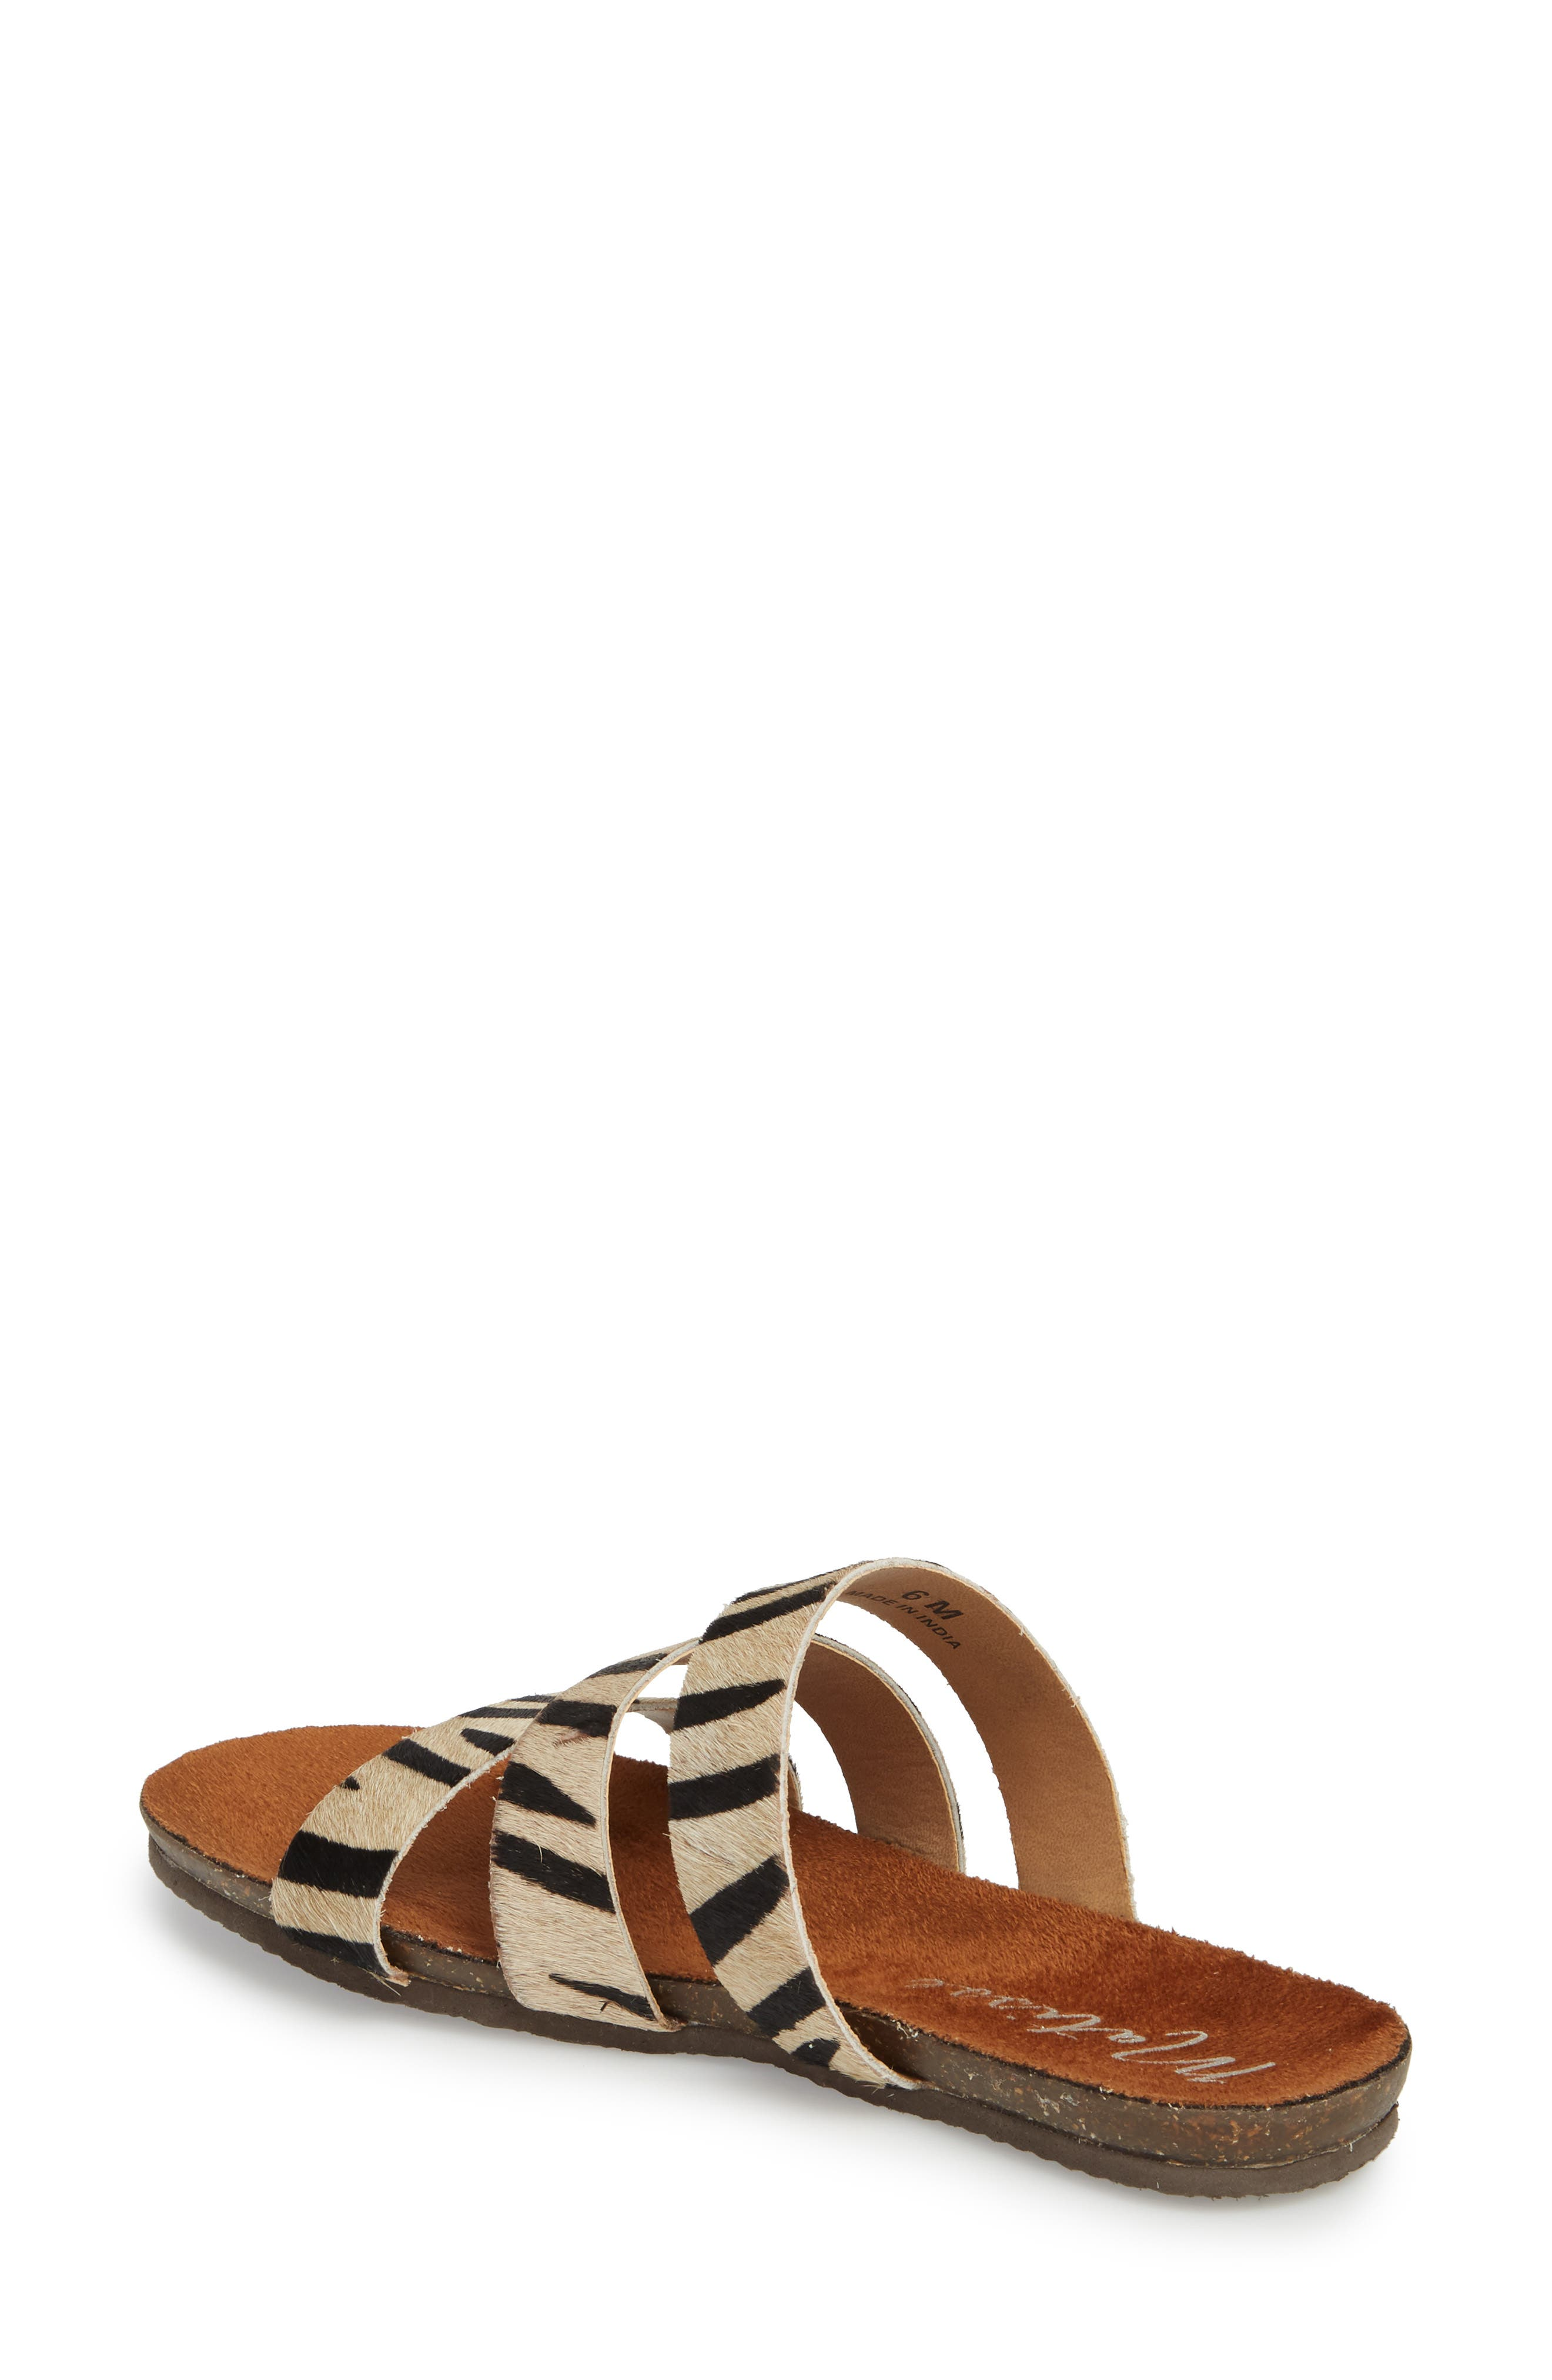 Florence Slide Sandal,                             Alternate thumbnail 2, color,                             ZEBRA CALF HAIR